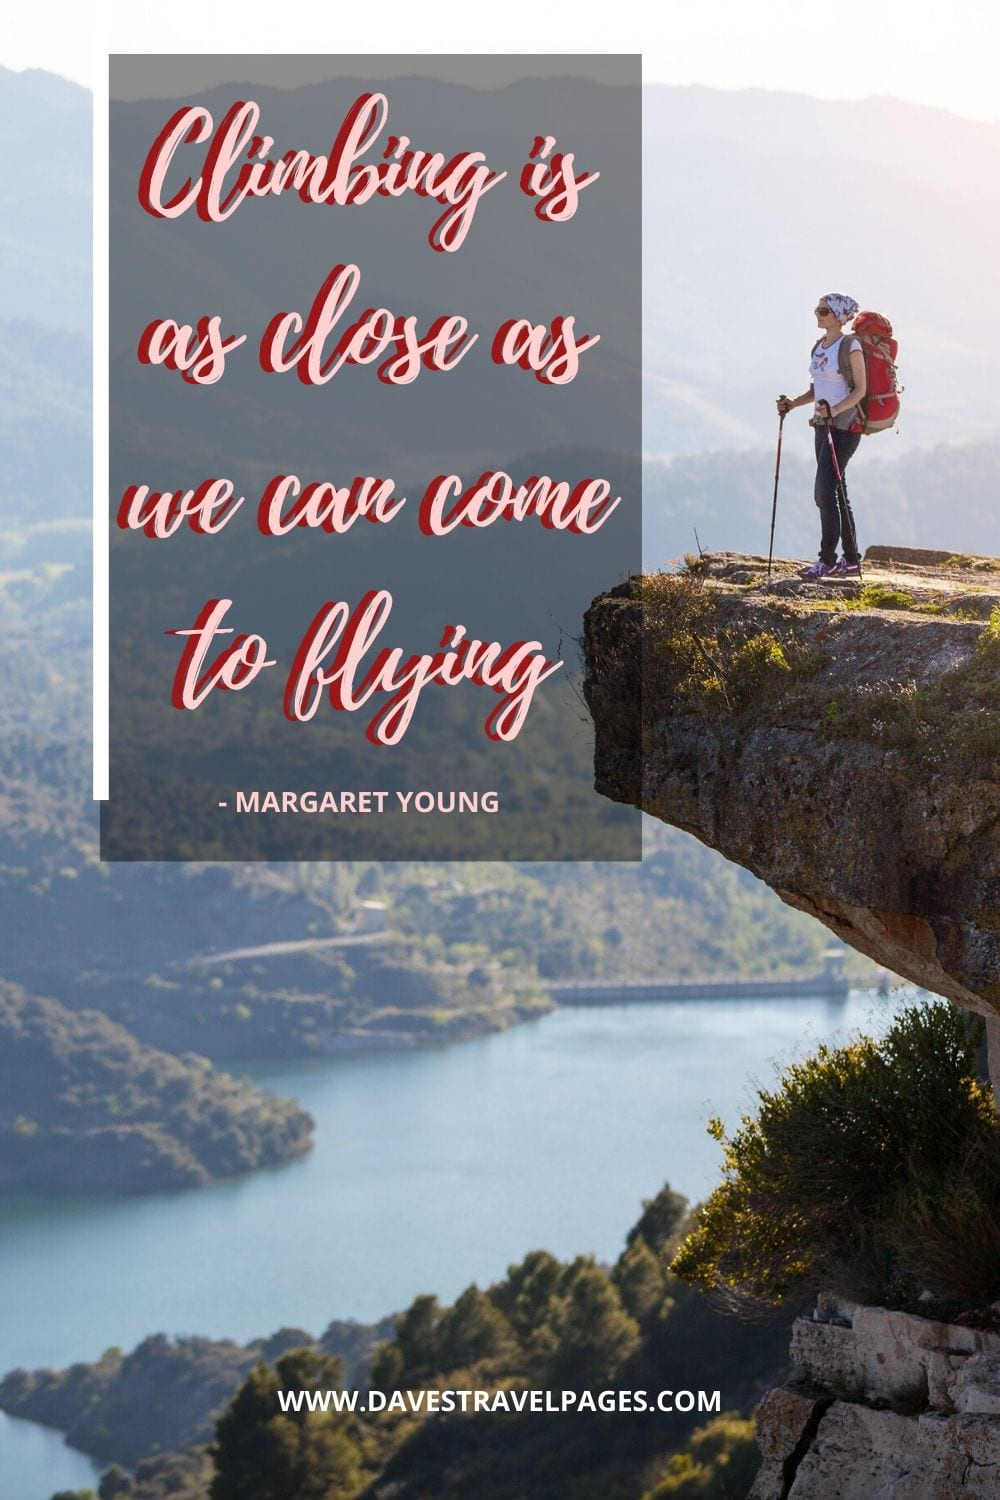 Climbing Quotes: Climbing is as close as we can come to flying - Margaret Young